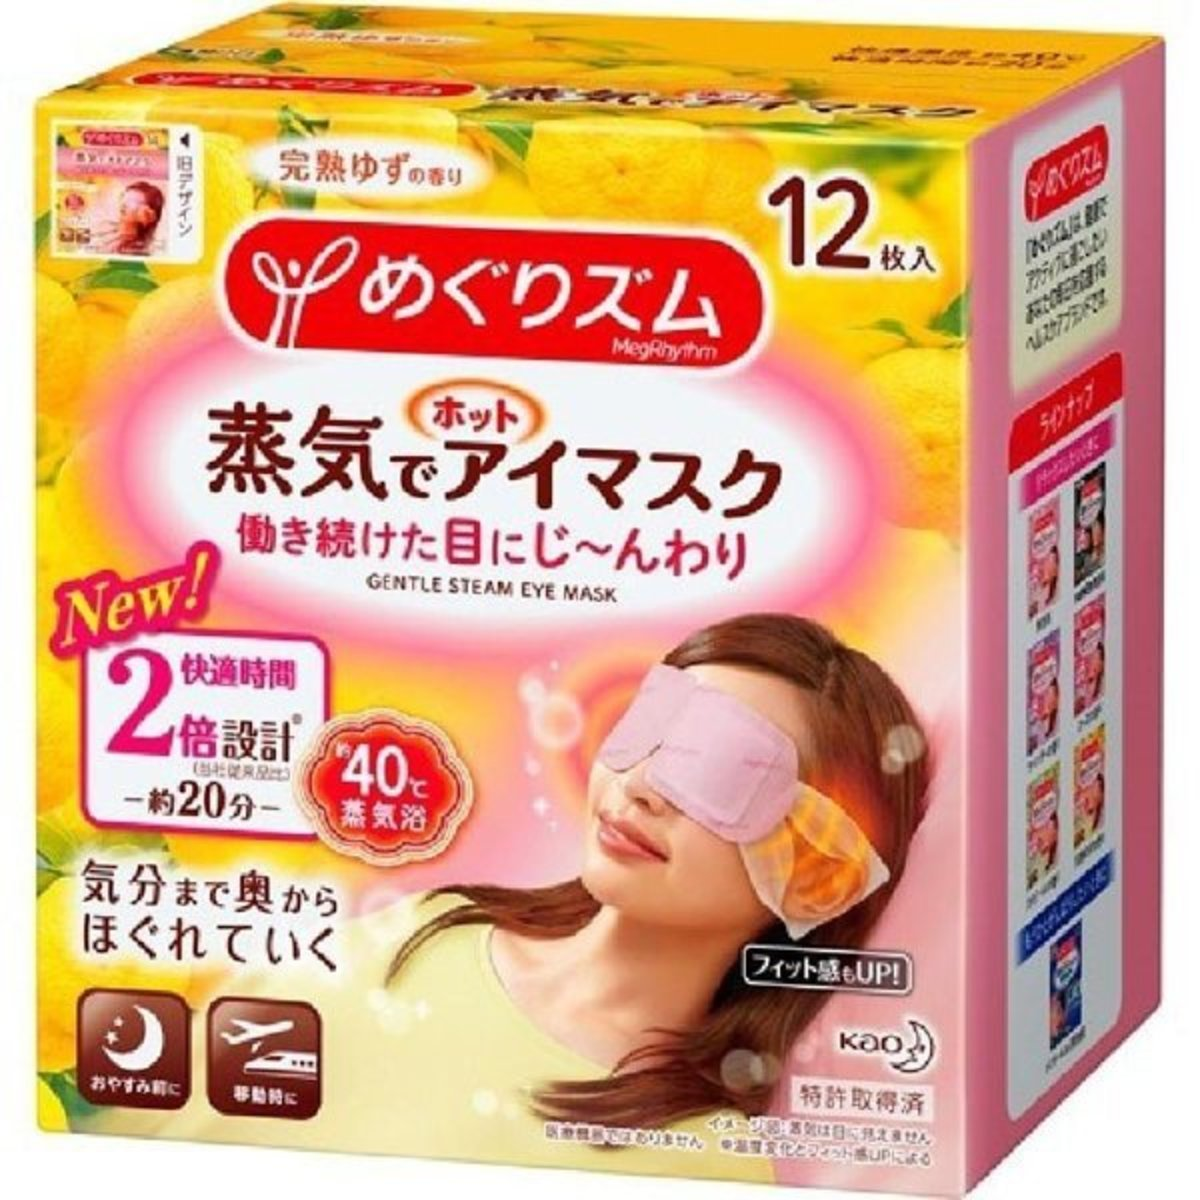 花王KAO - Steam Sensitive Eye Mask 12 Pieces - Yuzu Aroma (parallel import)